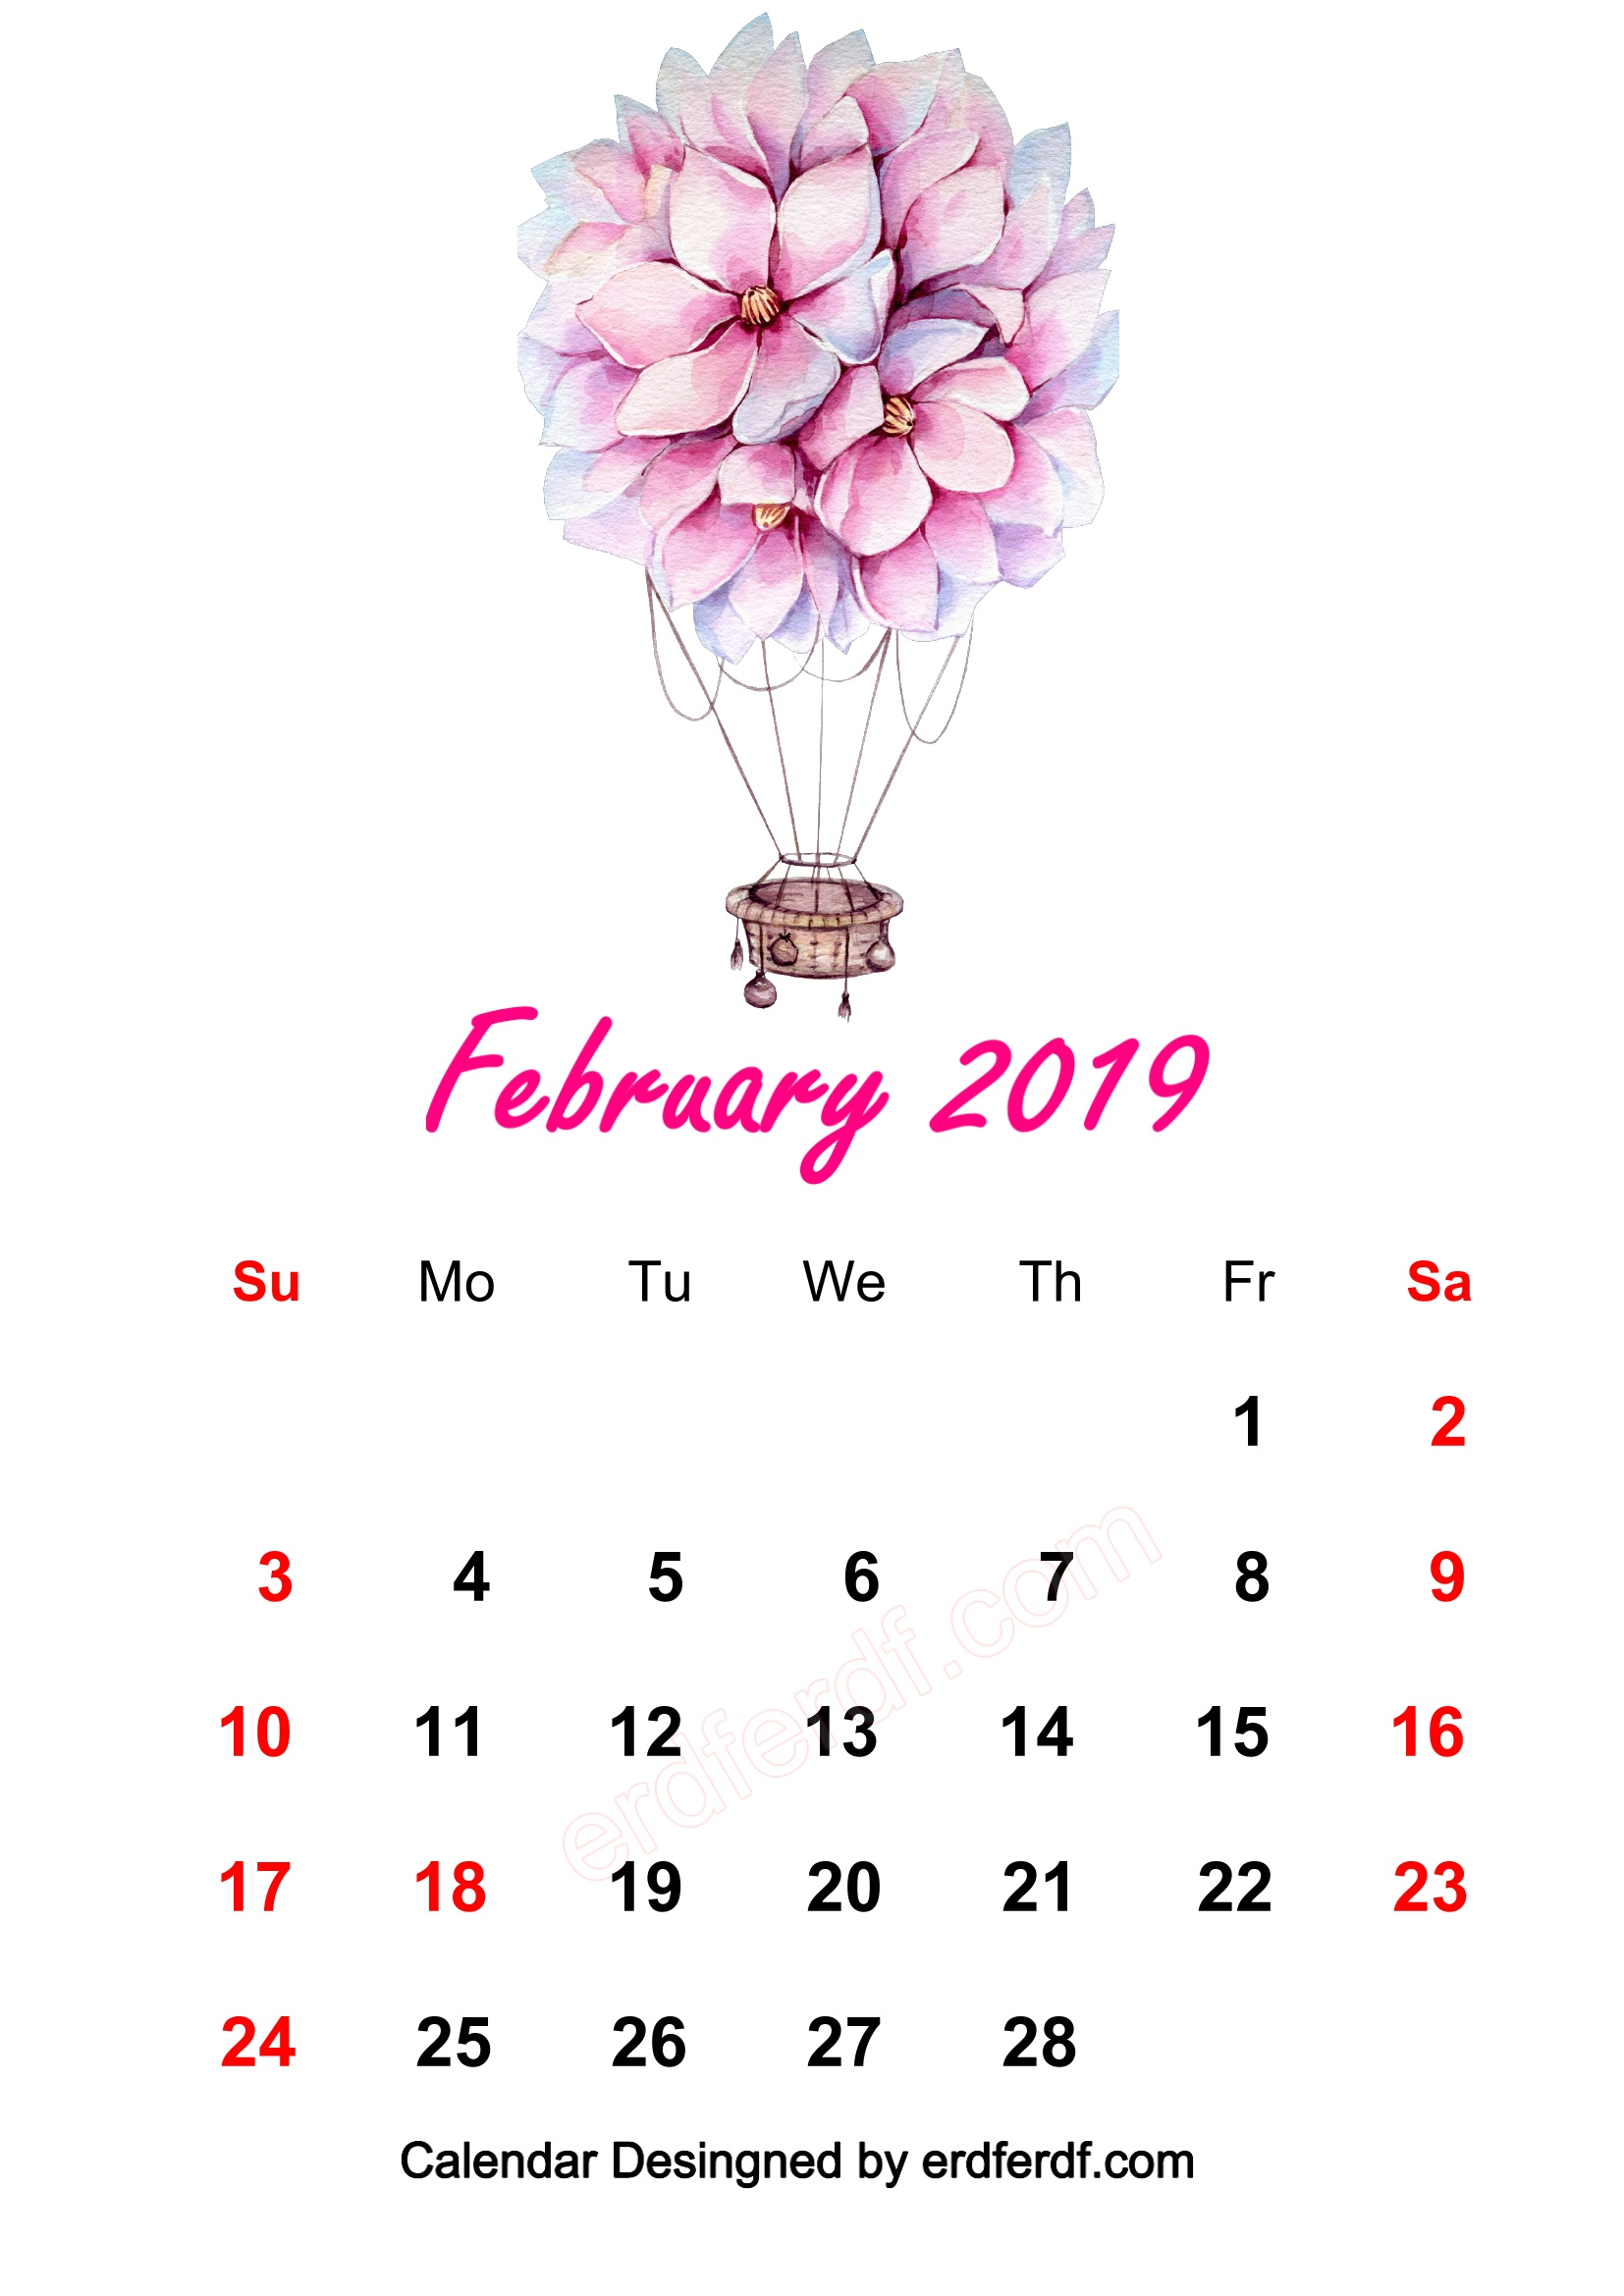 1 February 2019 HD Calendar Wallpapers Watercolor Flowers